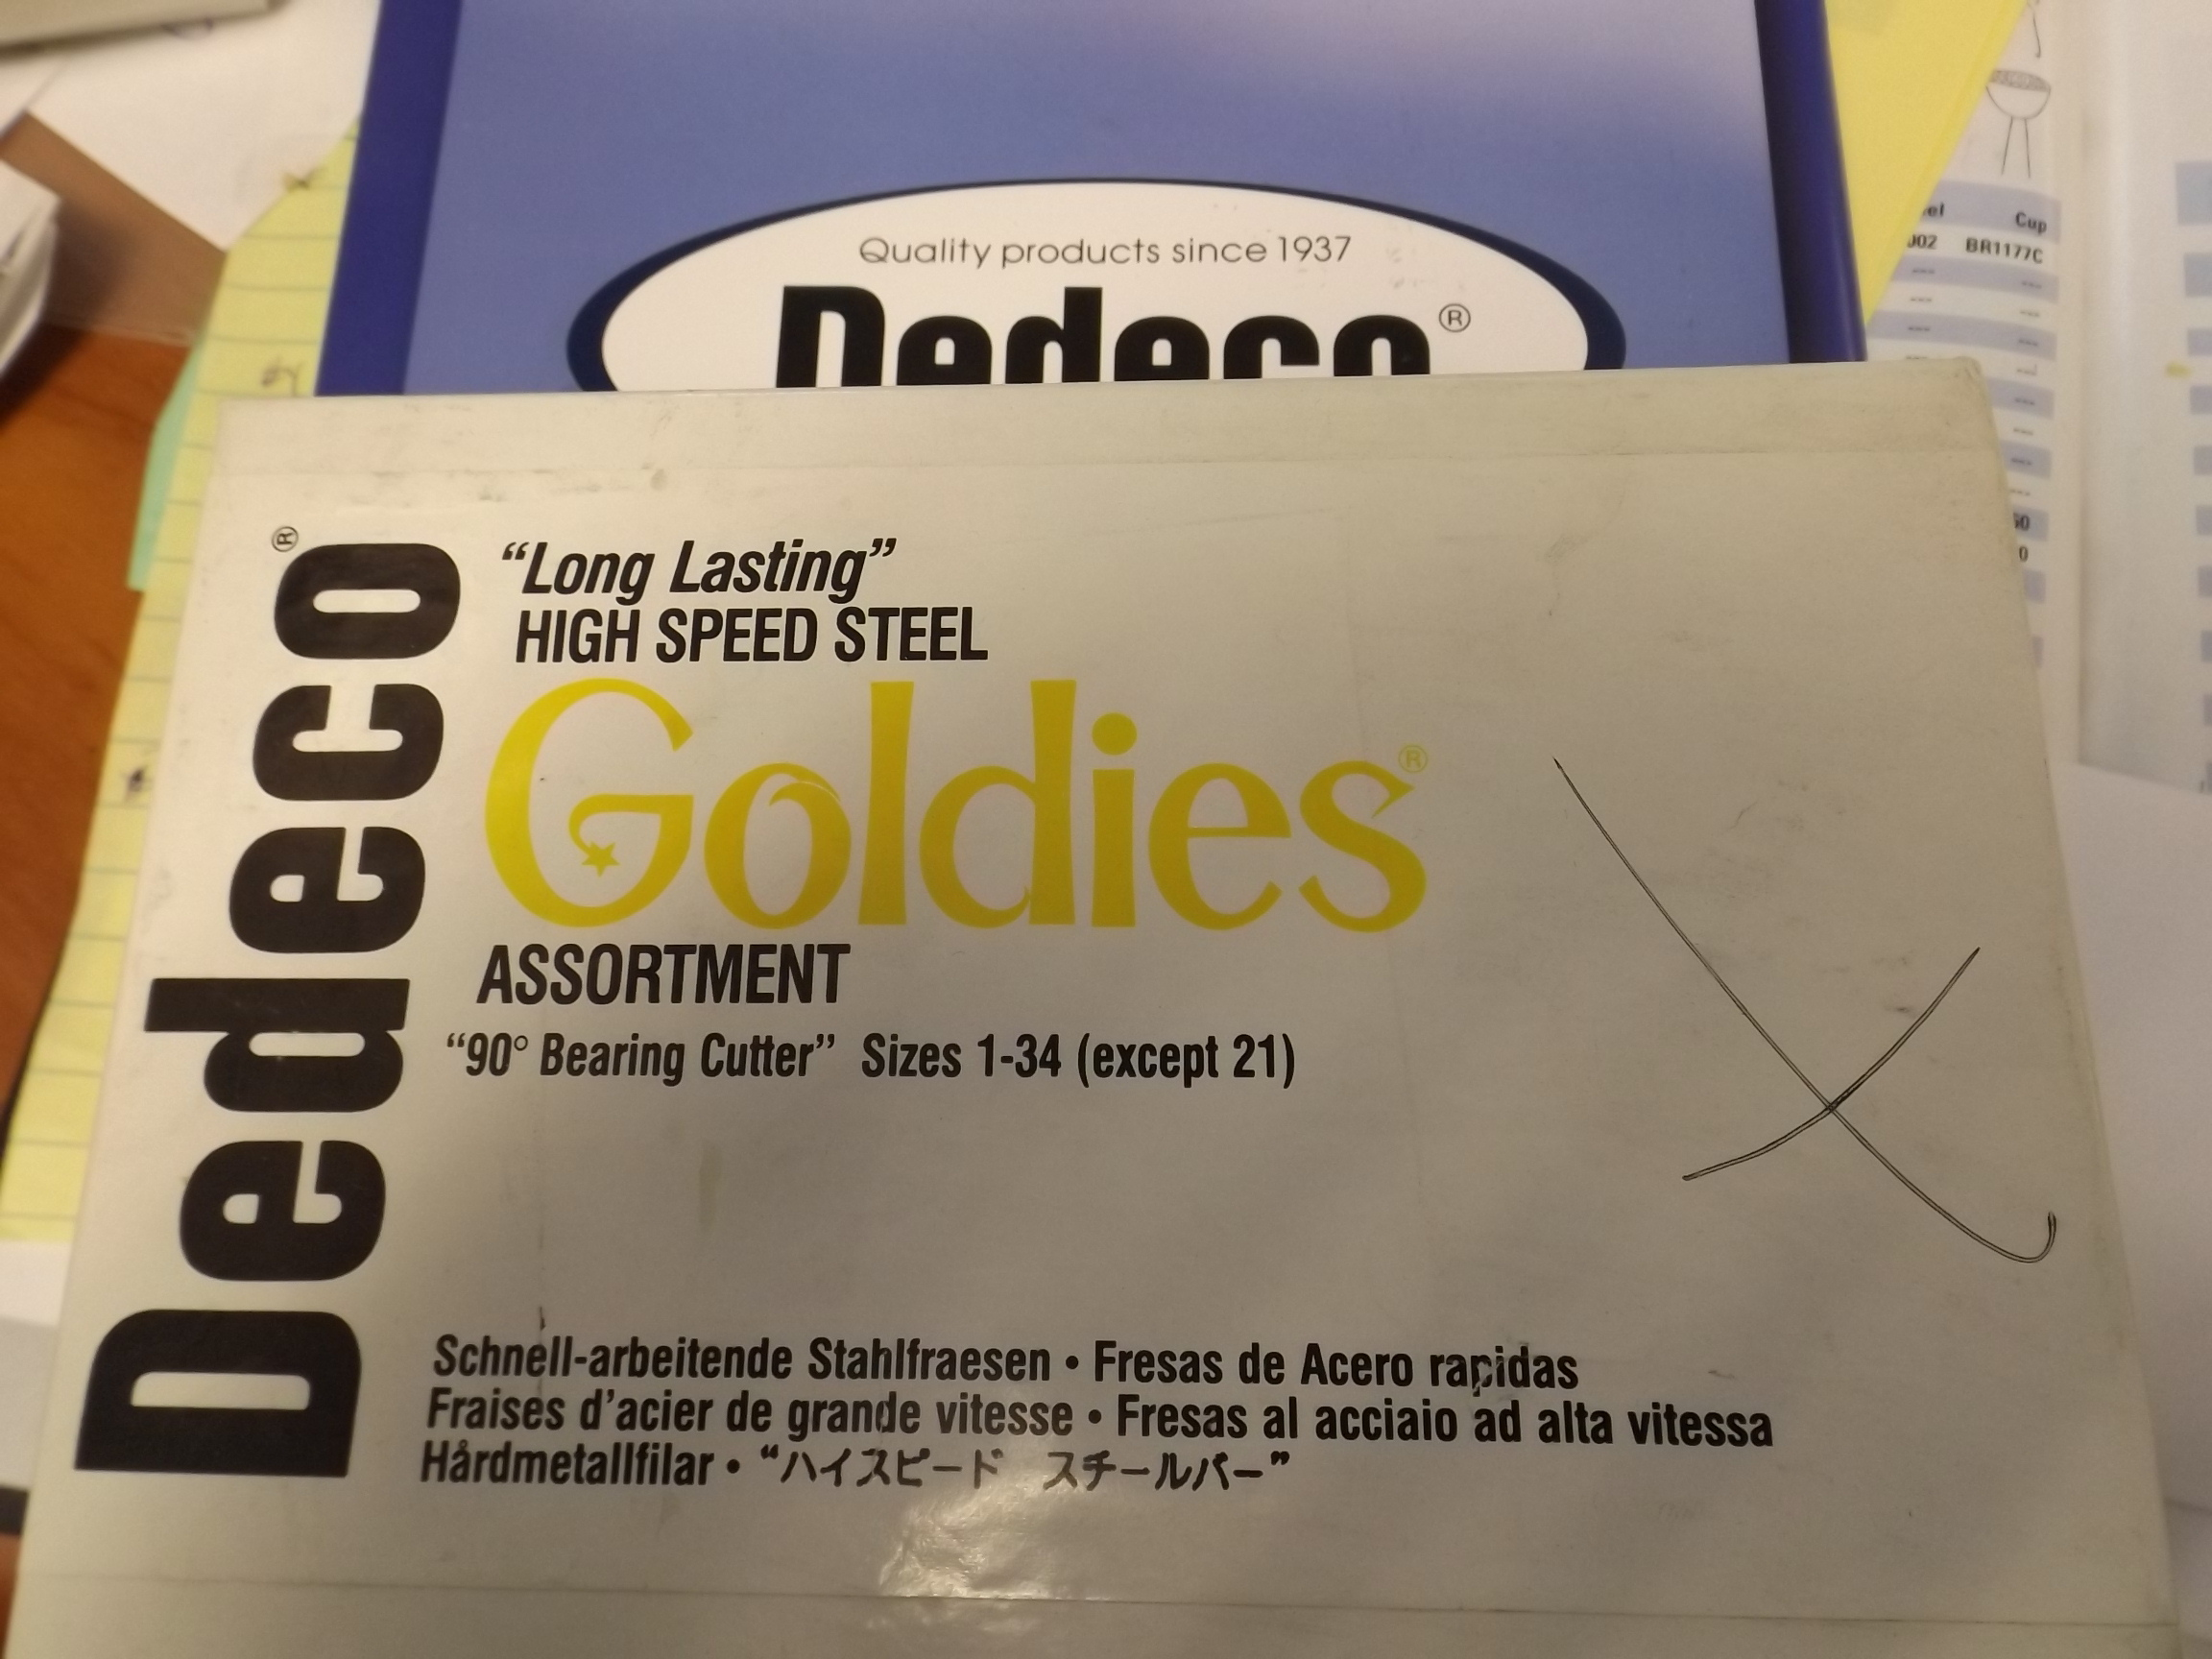 BR1795/M Dedeco Goldies High Speed Steel 90* Bearing Cutter Bur Assortment--28 pieces- One Only, Missing 5 pieces